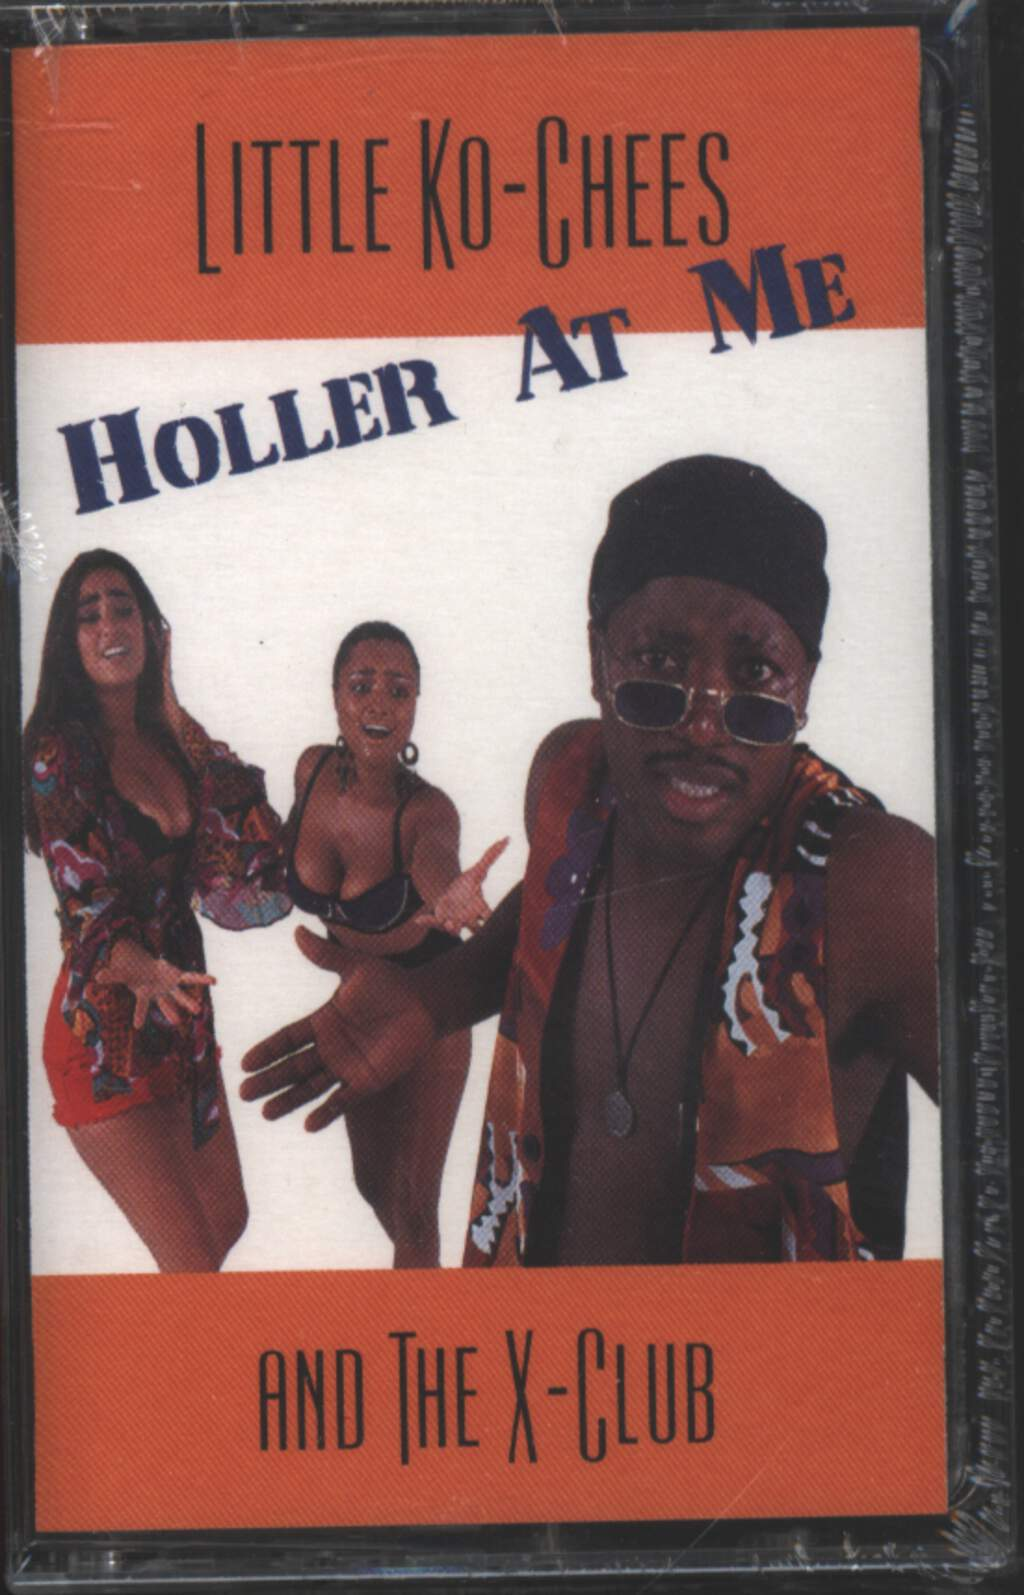 Little Ko-Chees And The X-Club: Holler At Me, Tape